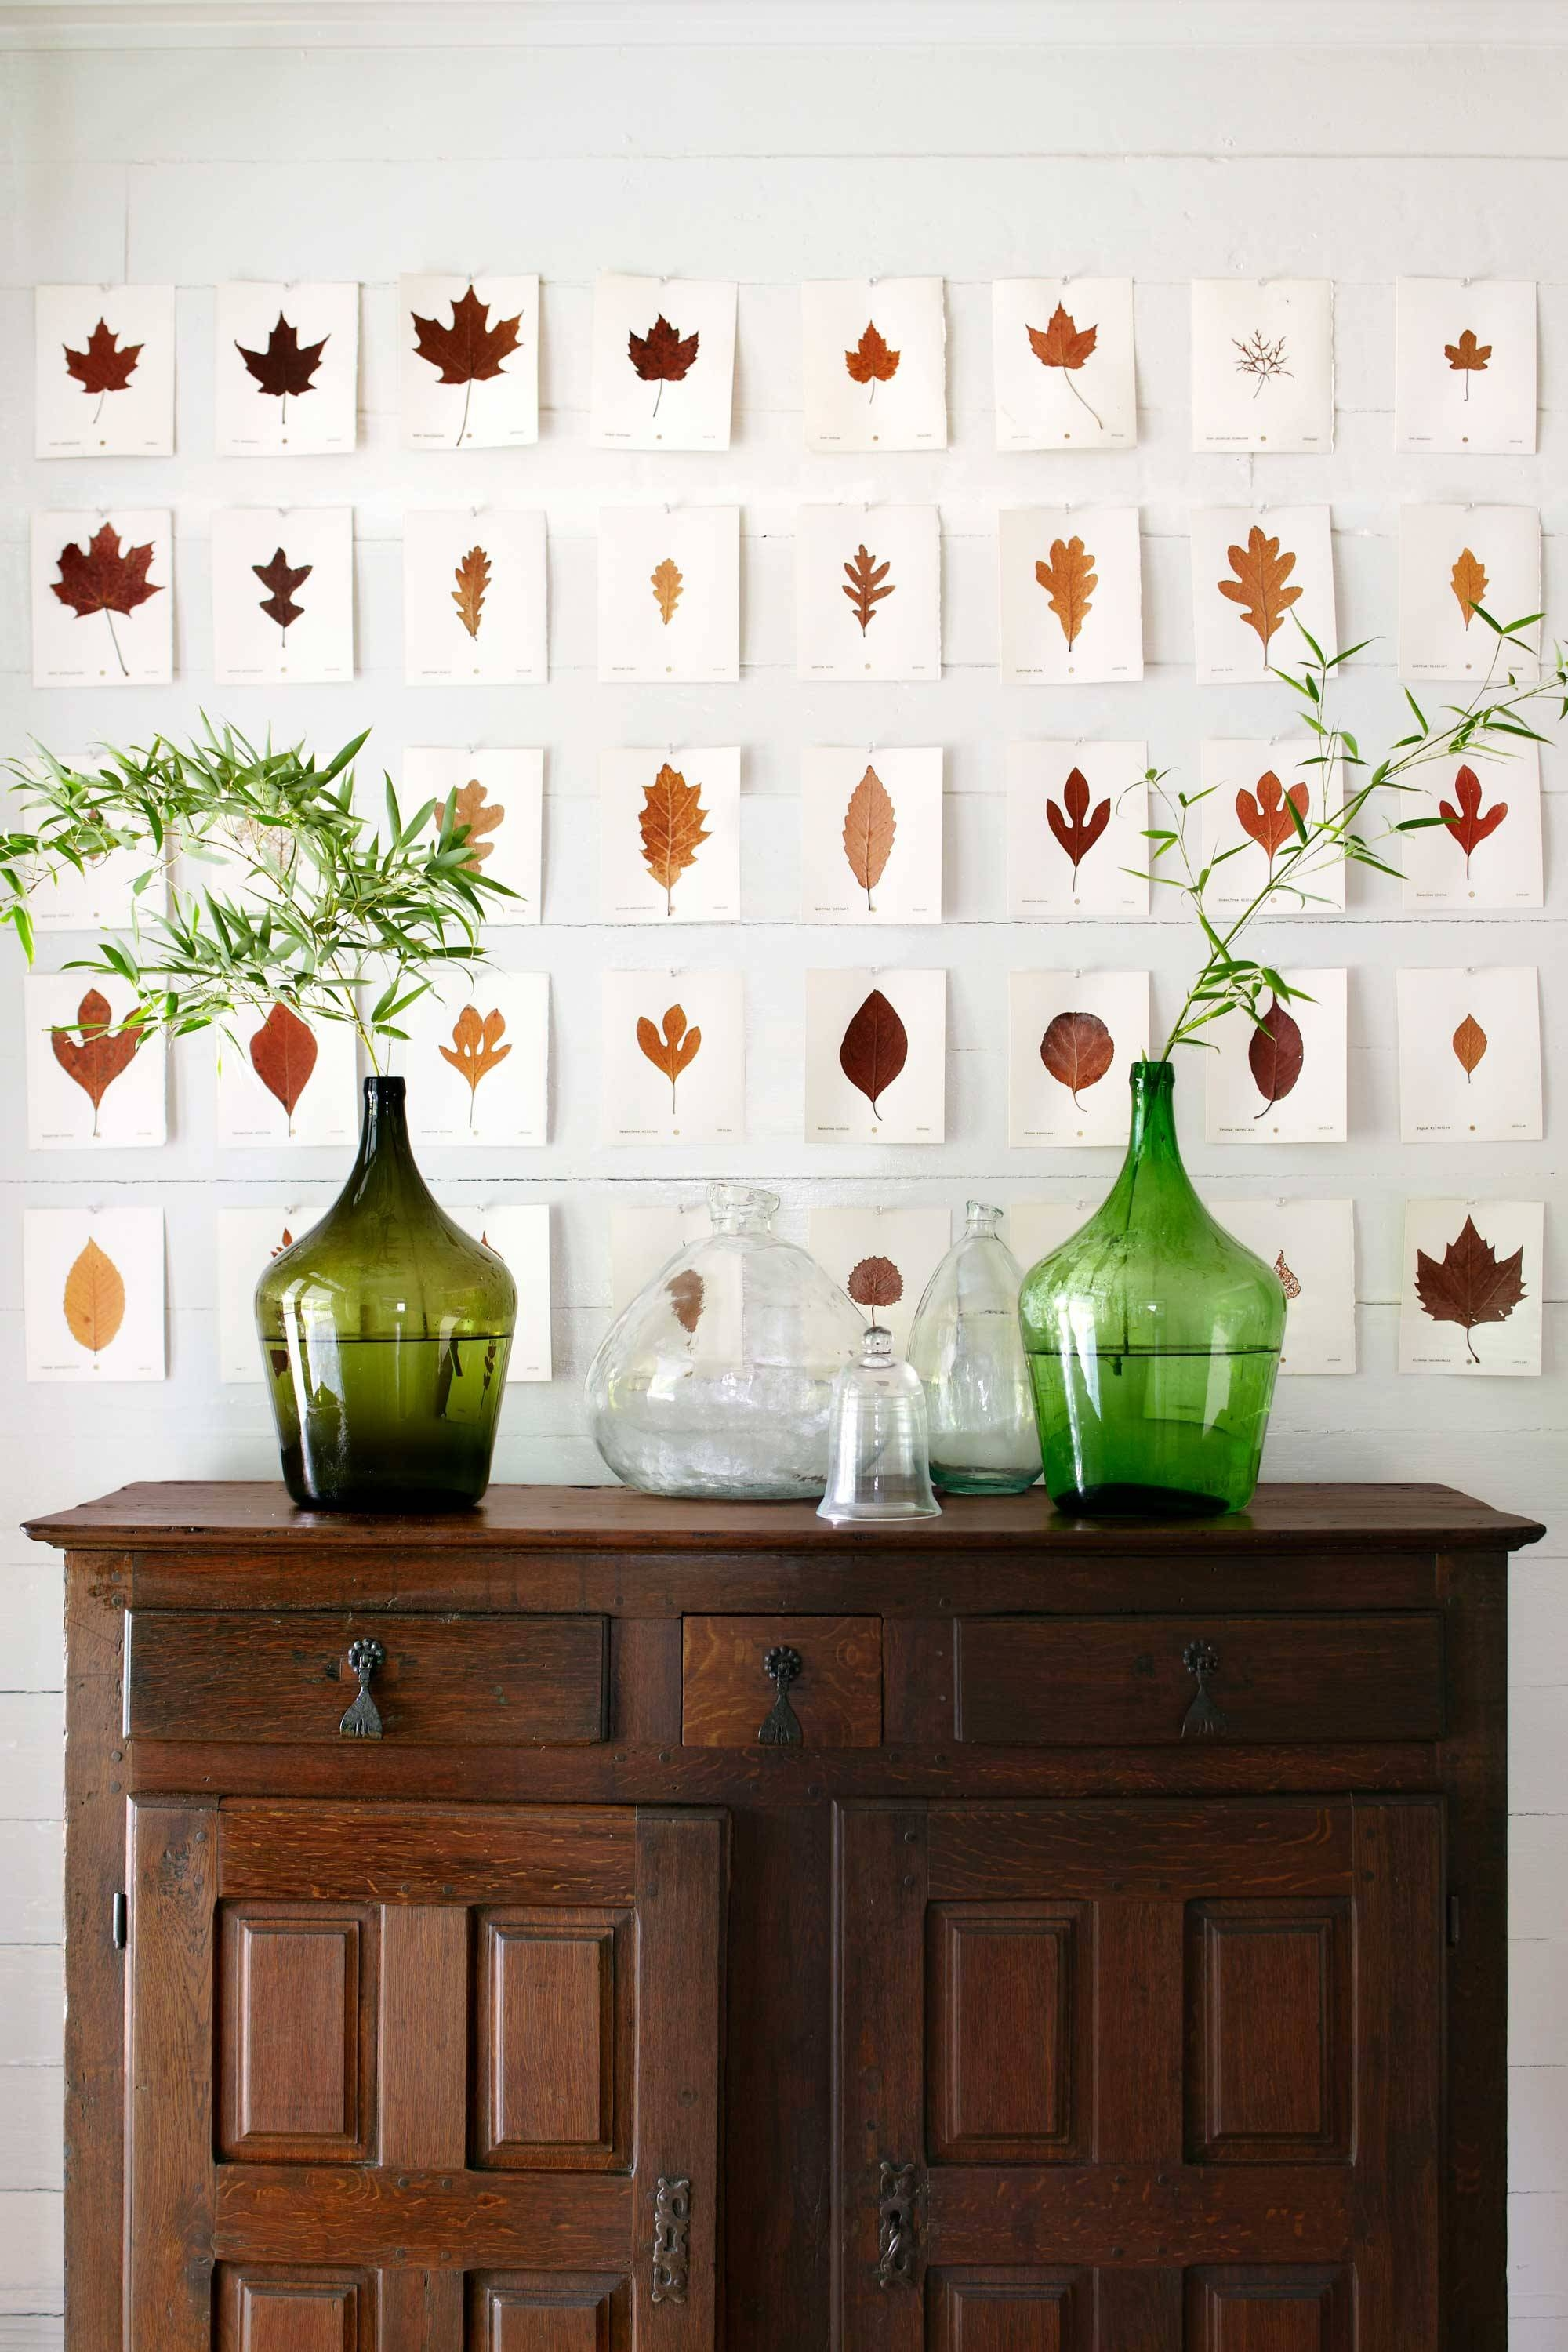 47 Easy Fall Decorating Ideas – Autumn Decor Tips To Try With Latest Autumn Inspired Wall Art (View 17 of 25)